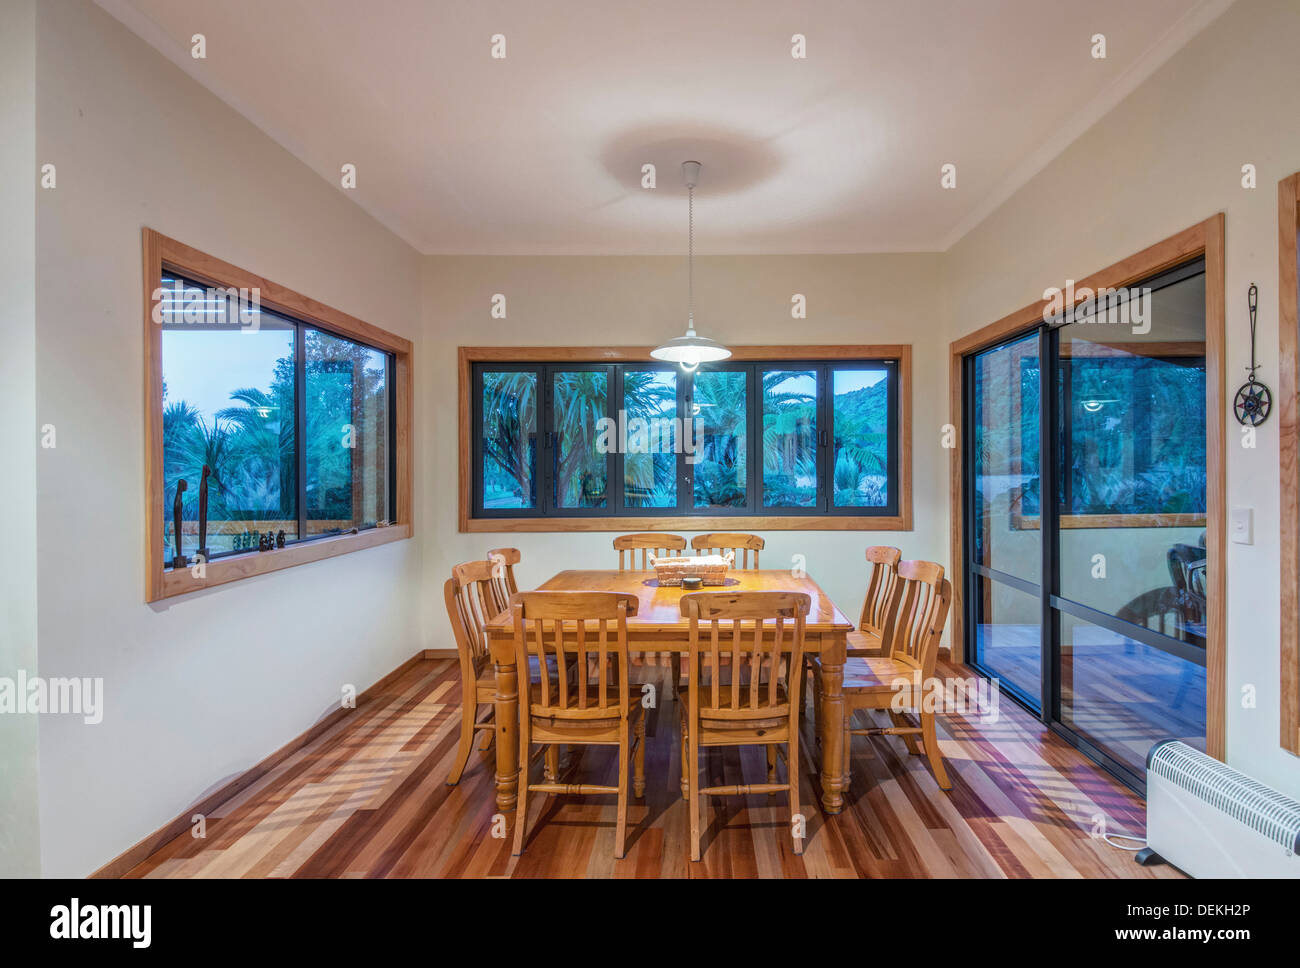 Dining table and chairs in dining room - Stock Image